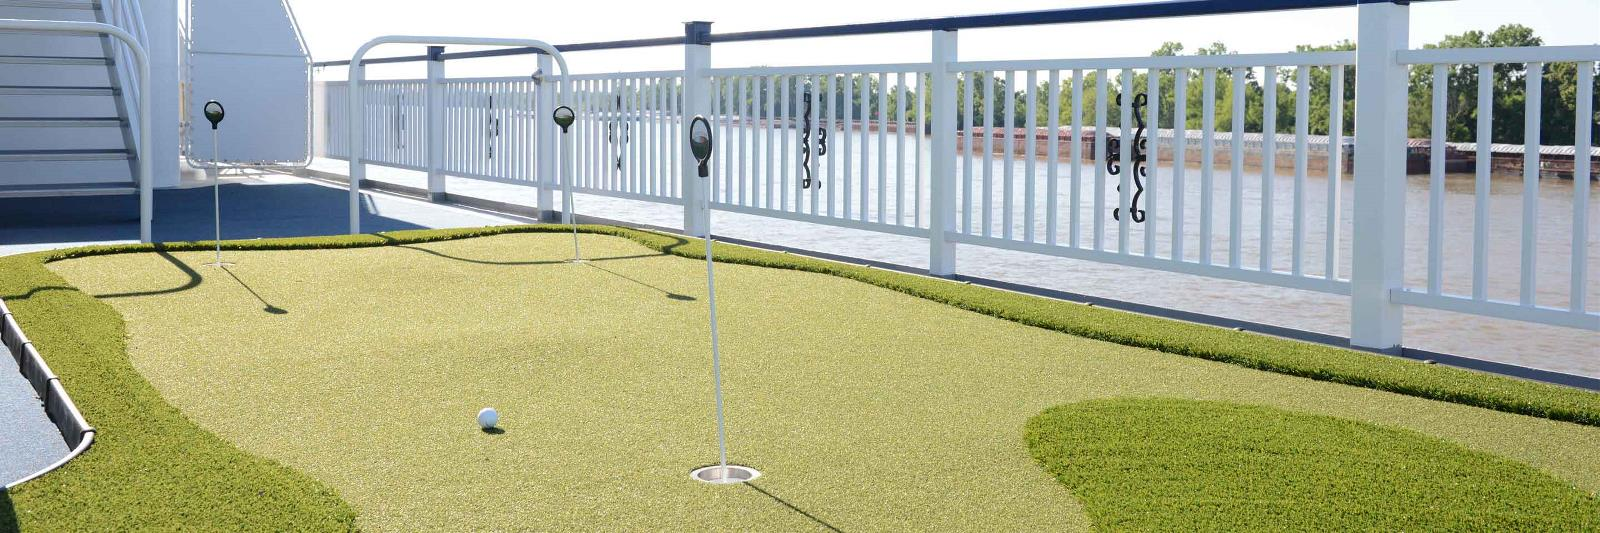 American Cruise Lines - Independence - Putting Green.jpg